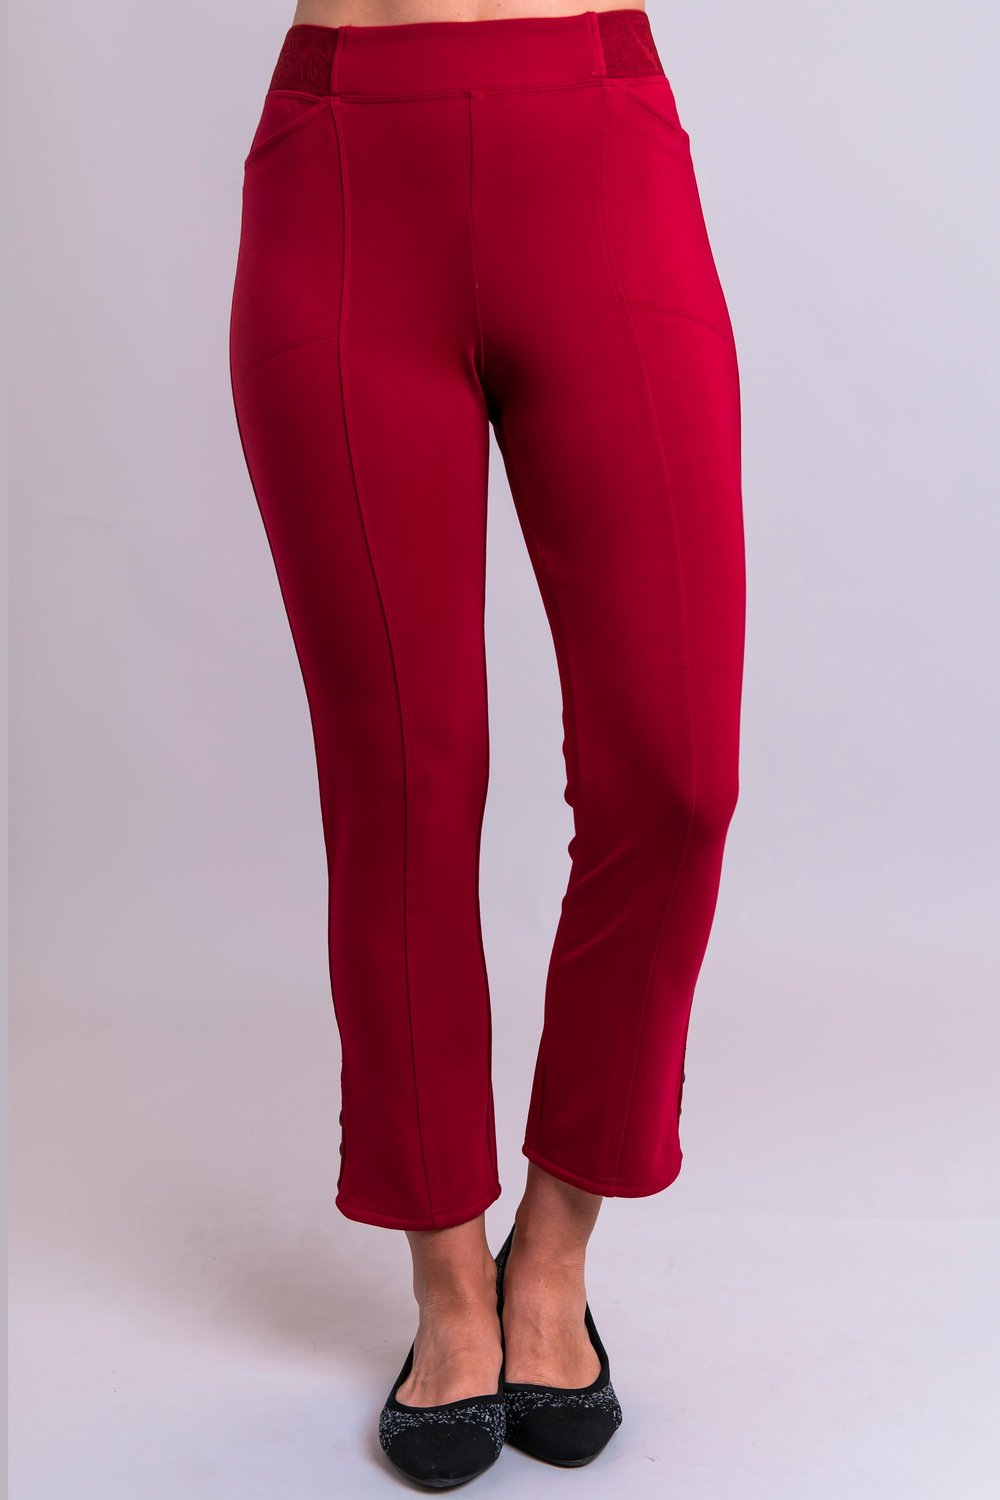 Nadine Pant in Lipstick Red